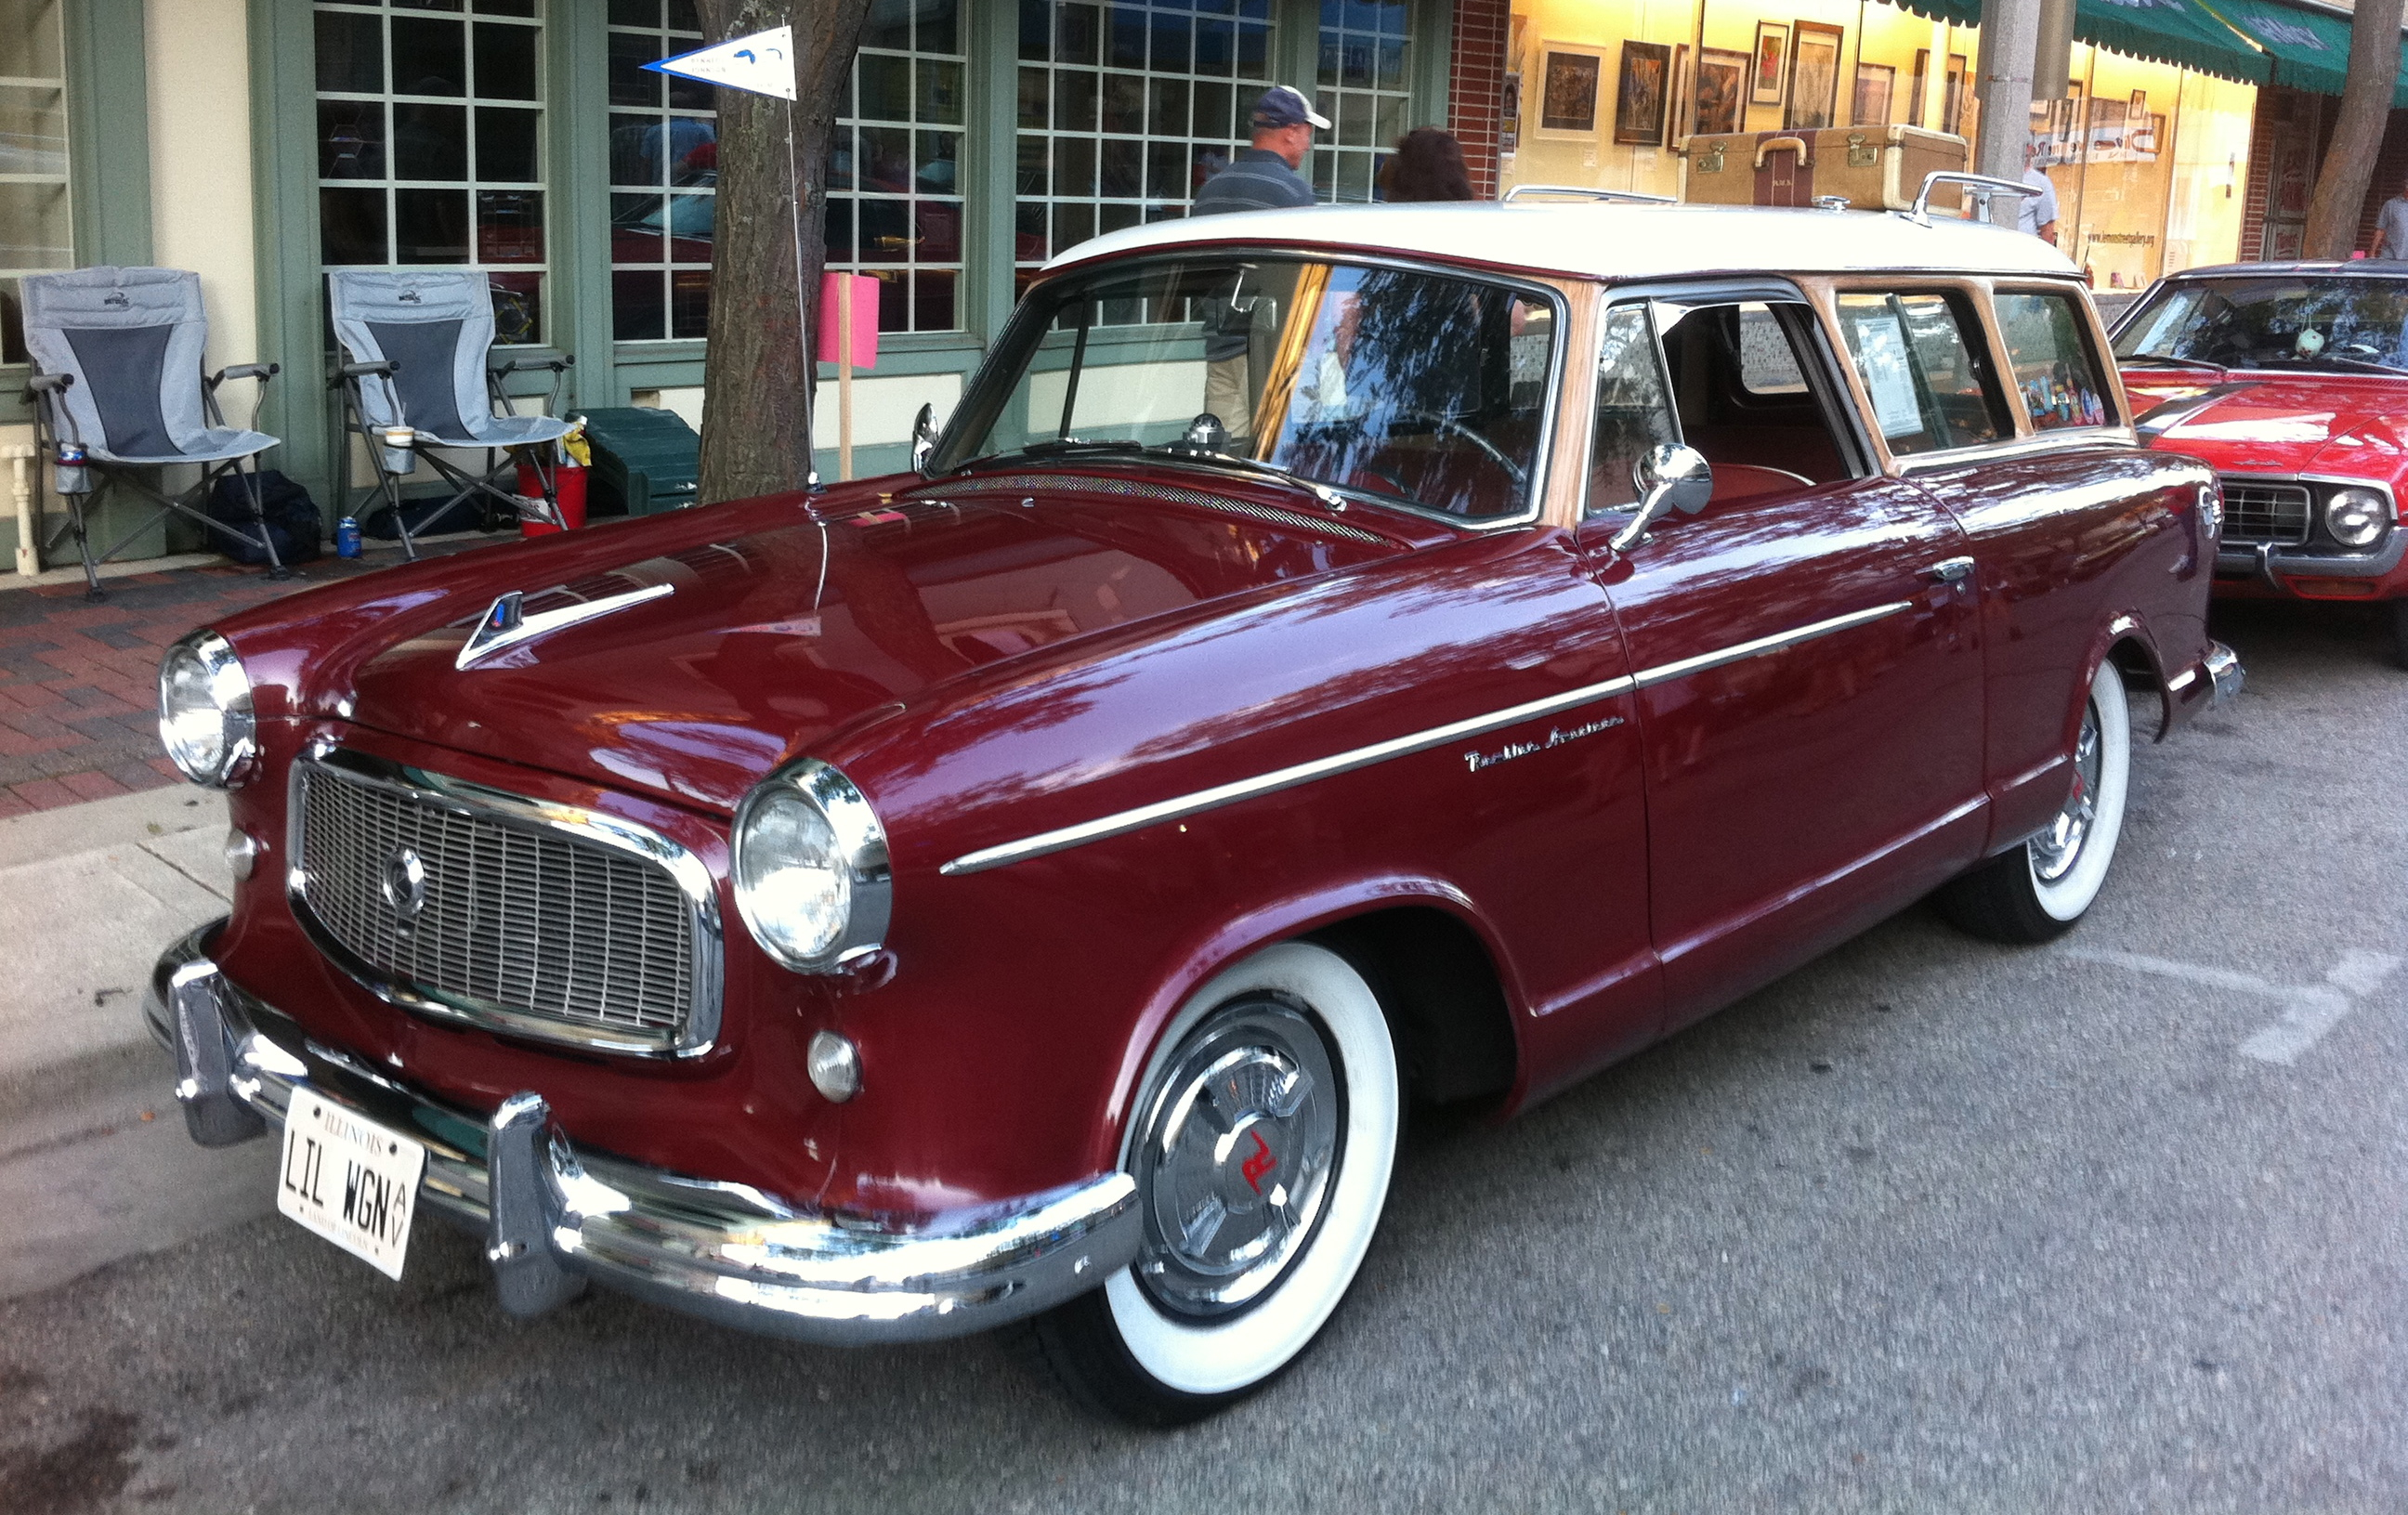 Honda Of Concord >> 1960 American Motors Rambler 6 - Information and photos ...